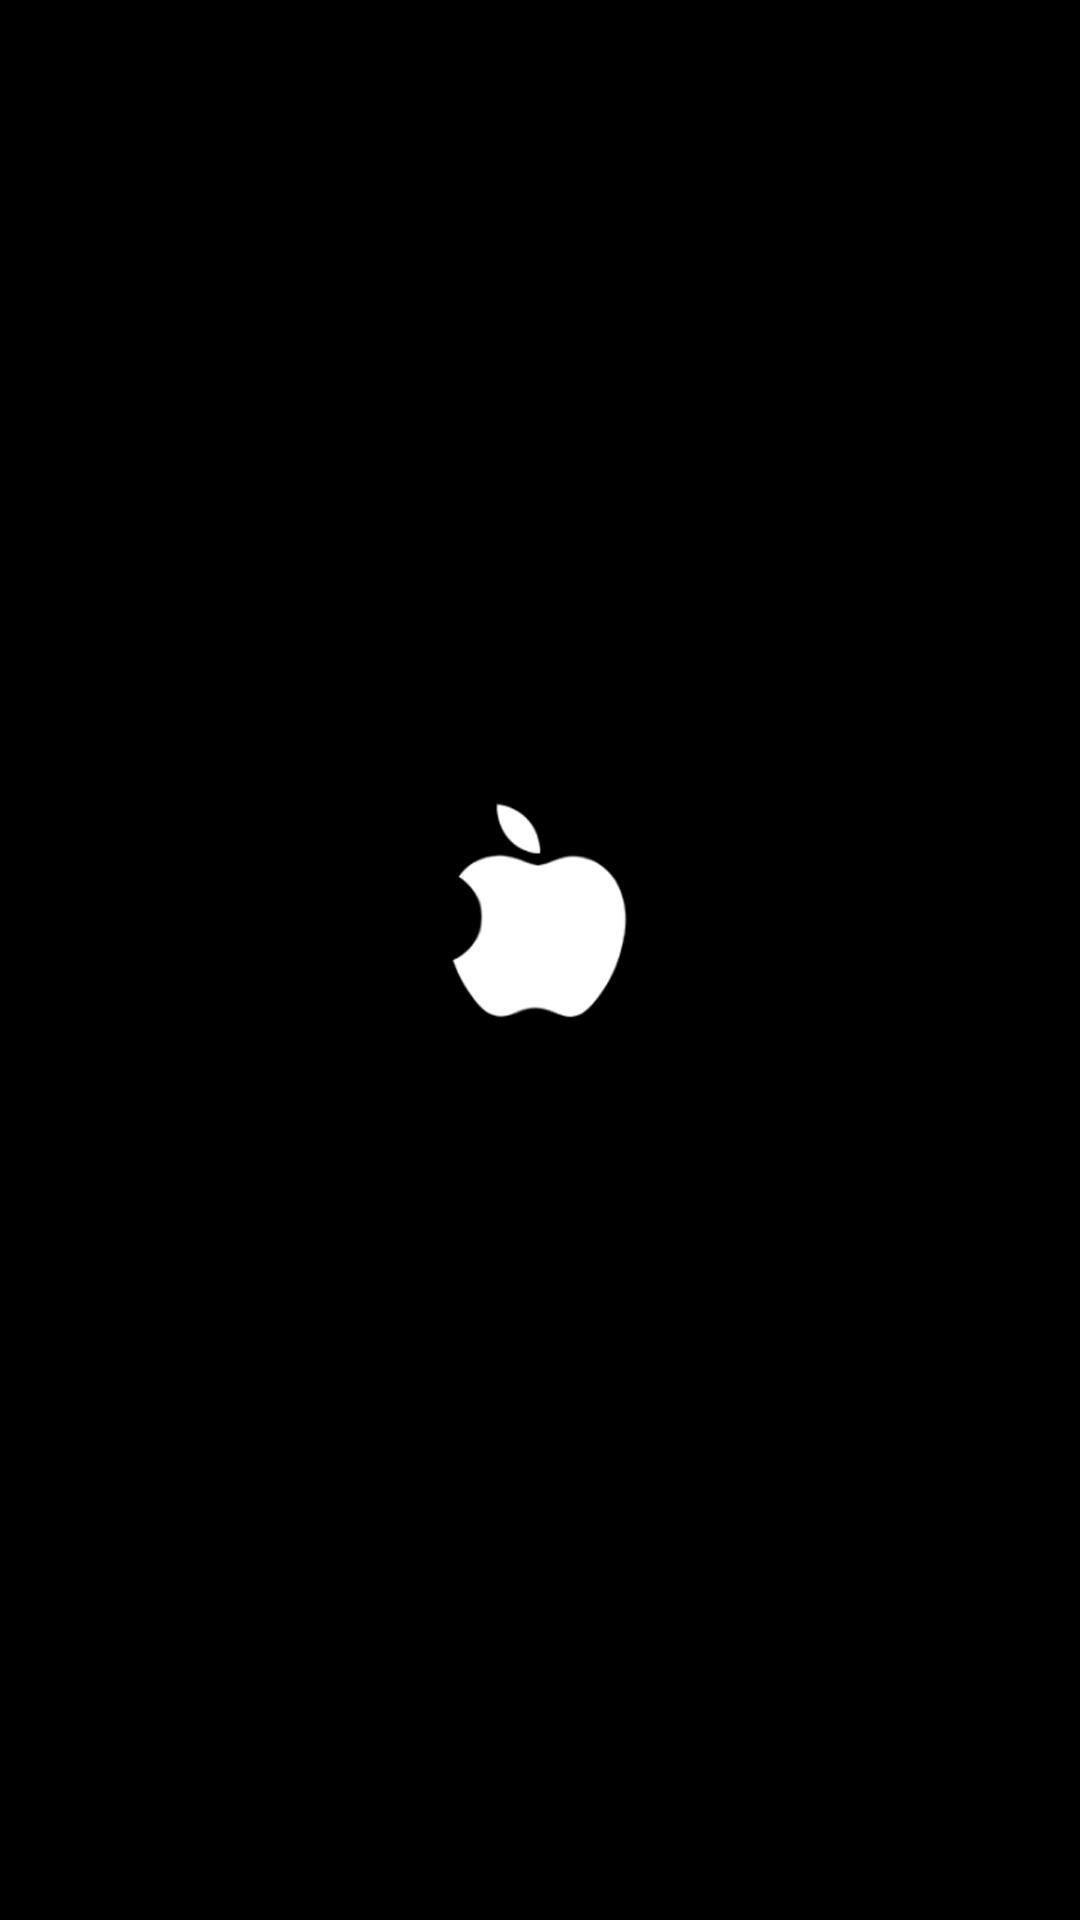 black apple logo 1080 wallpapers wallpaper cave